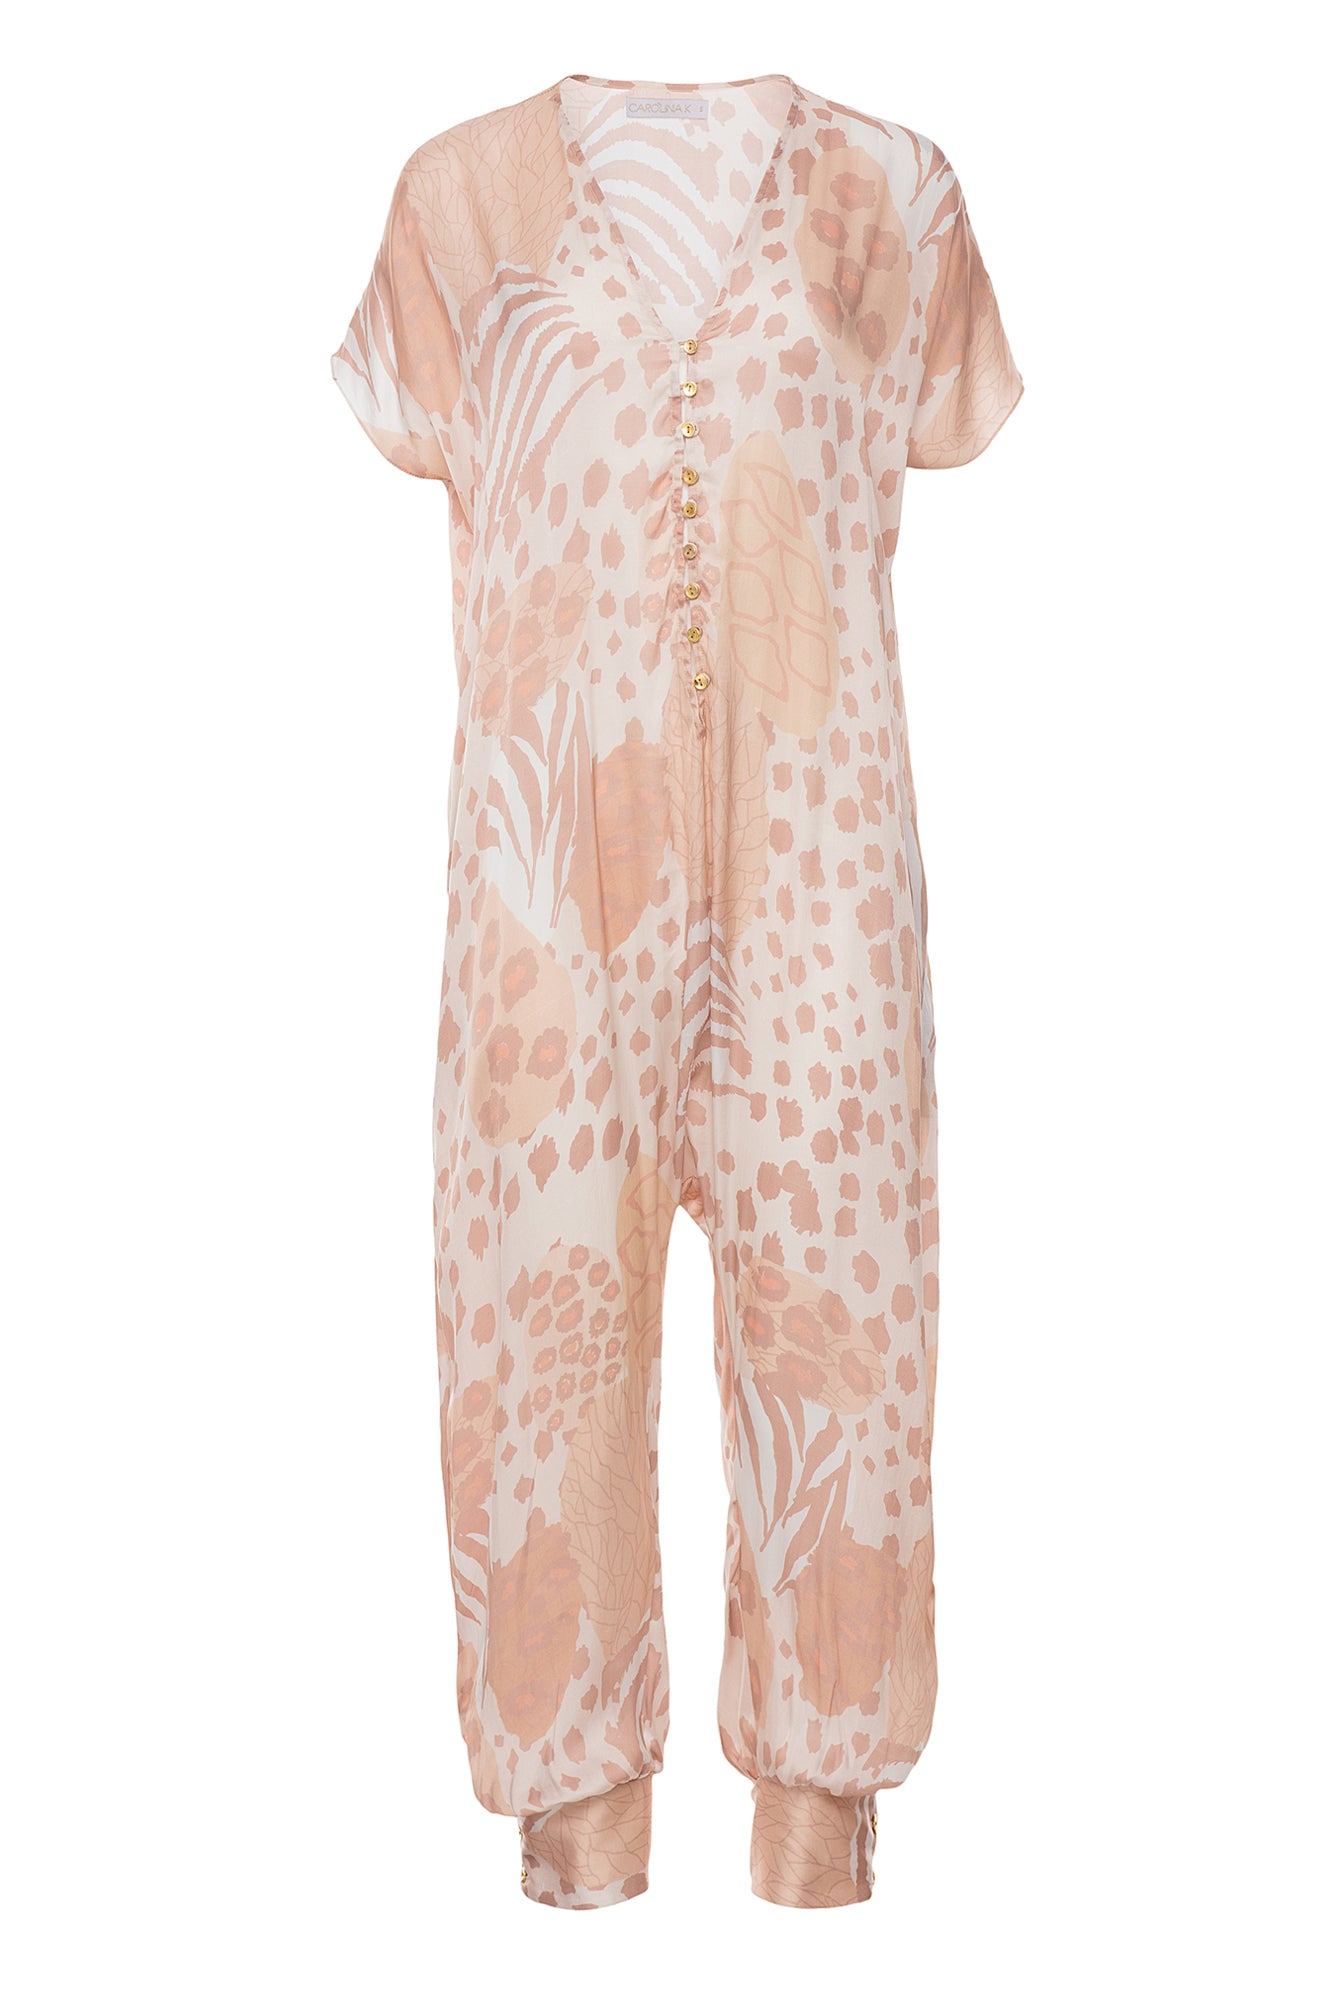 Carolina K Sera Jumpsuit Champagne Jungle